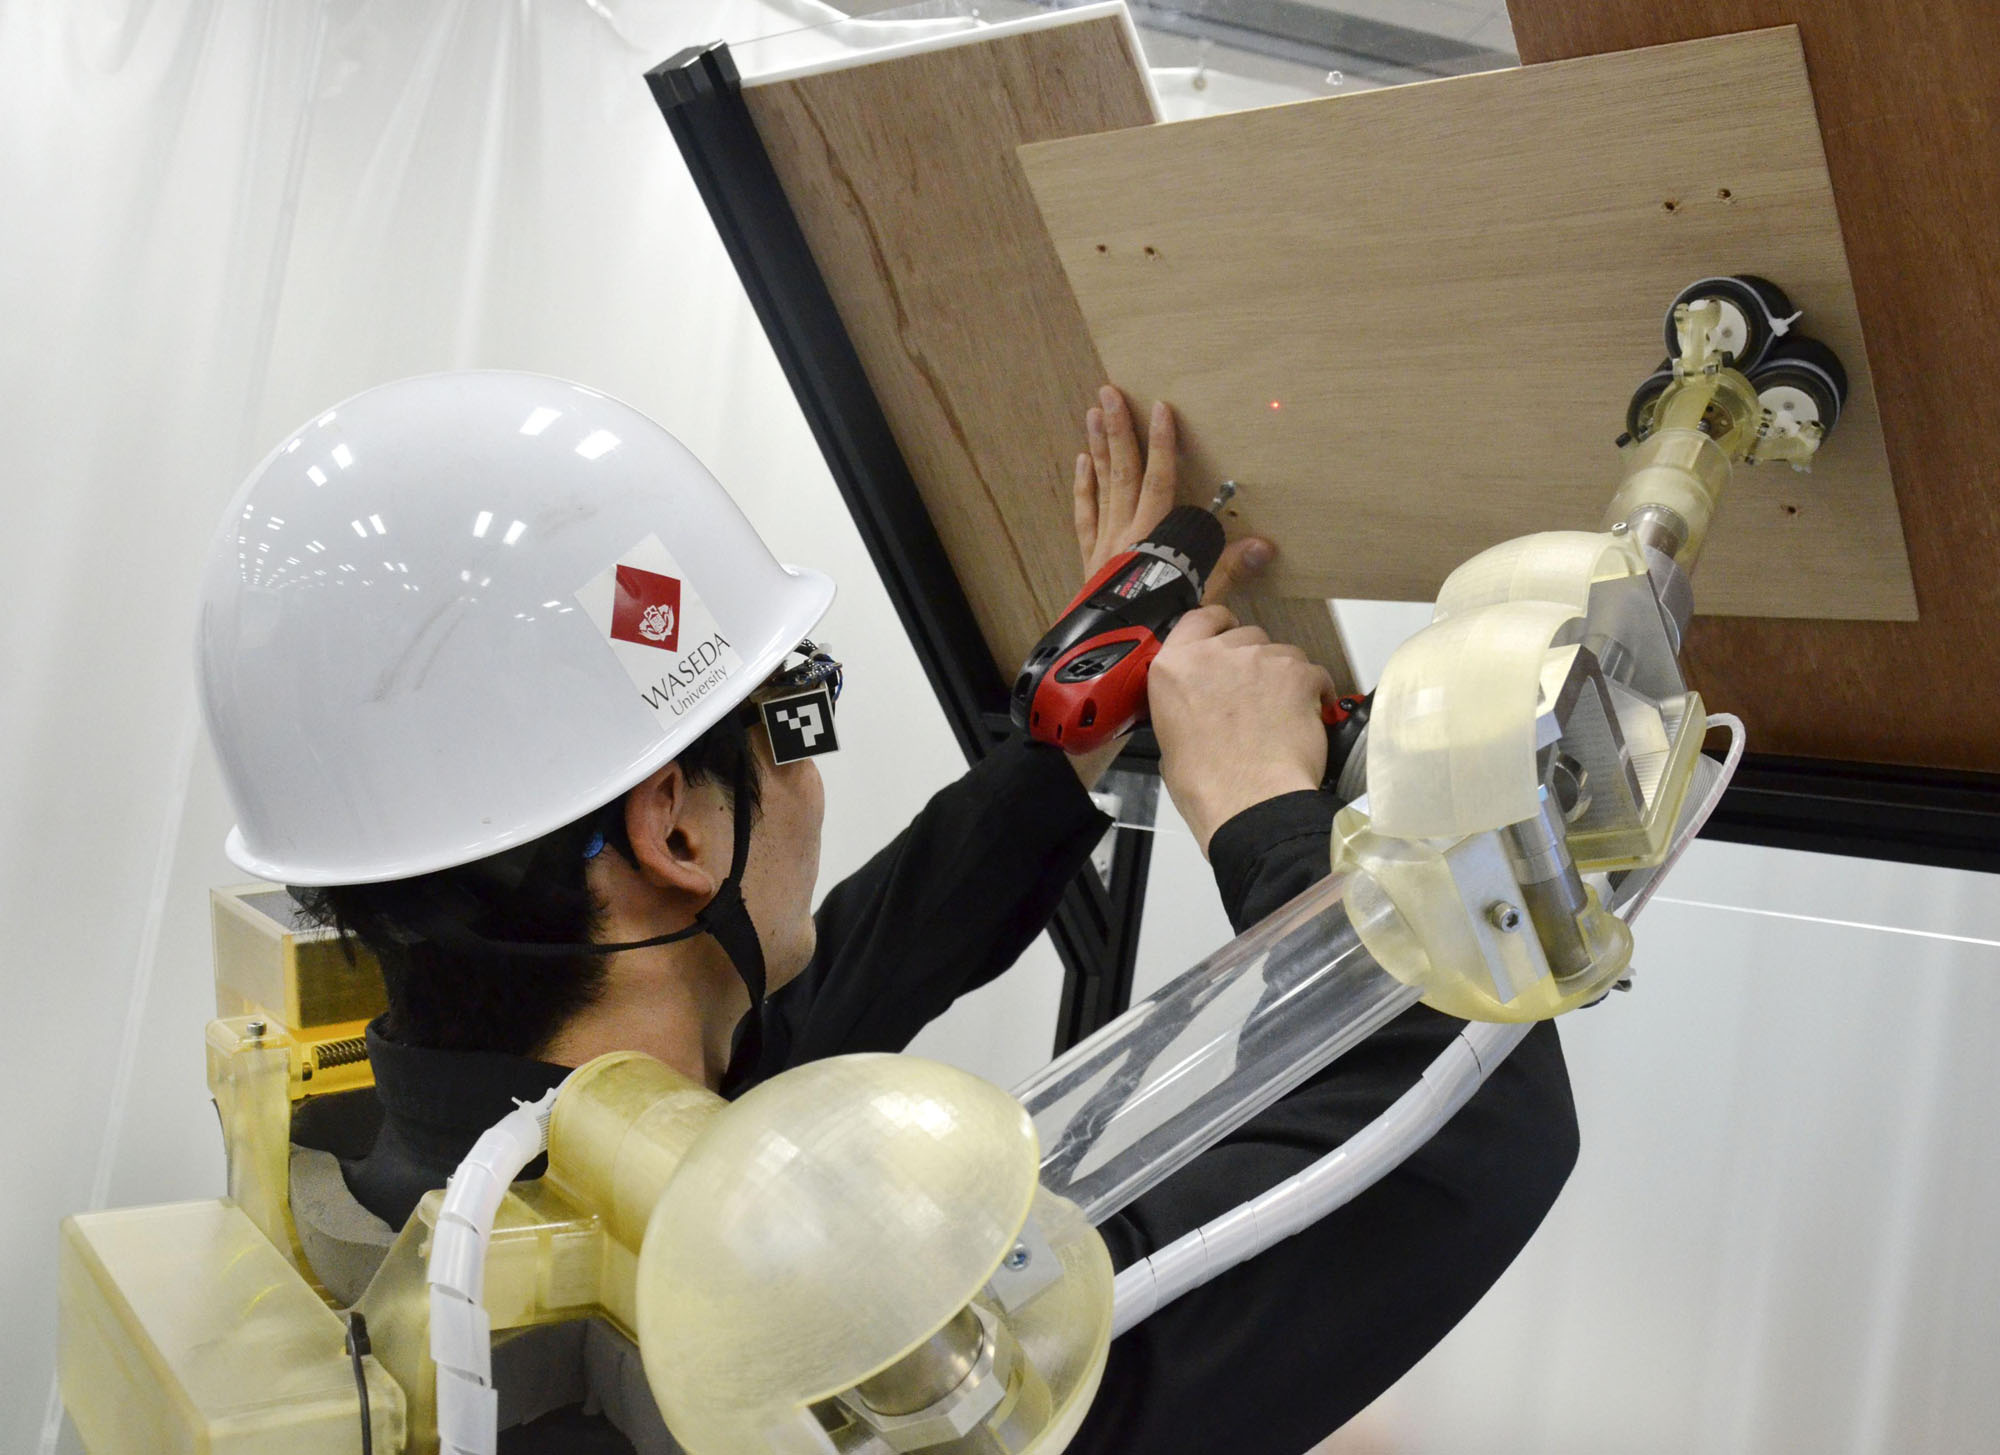 A wearable arm-shaped robot helps hold a board in place while a man drills into it during a demonstration in Tokyo in January. | KYODO